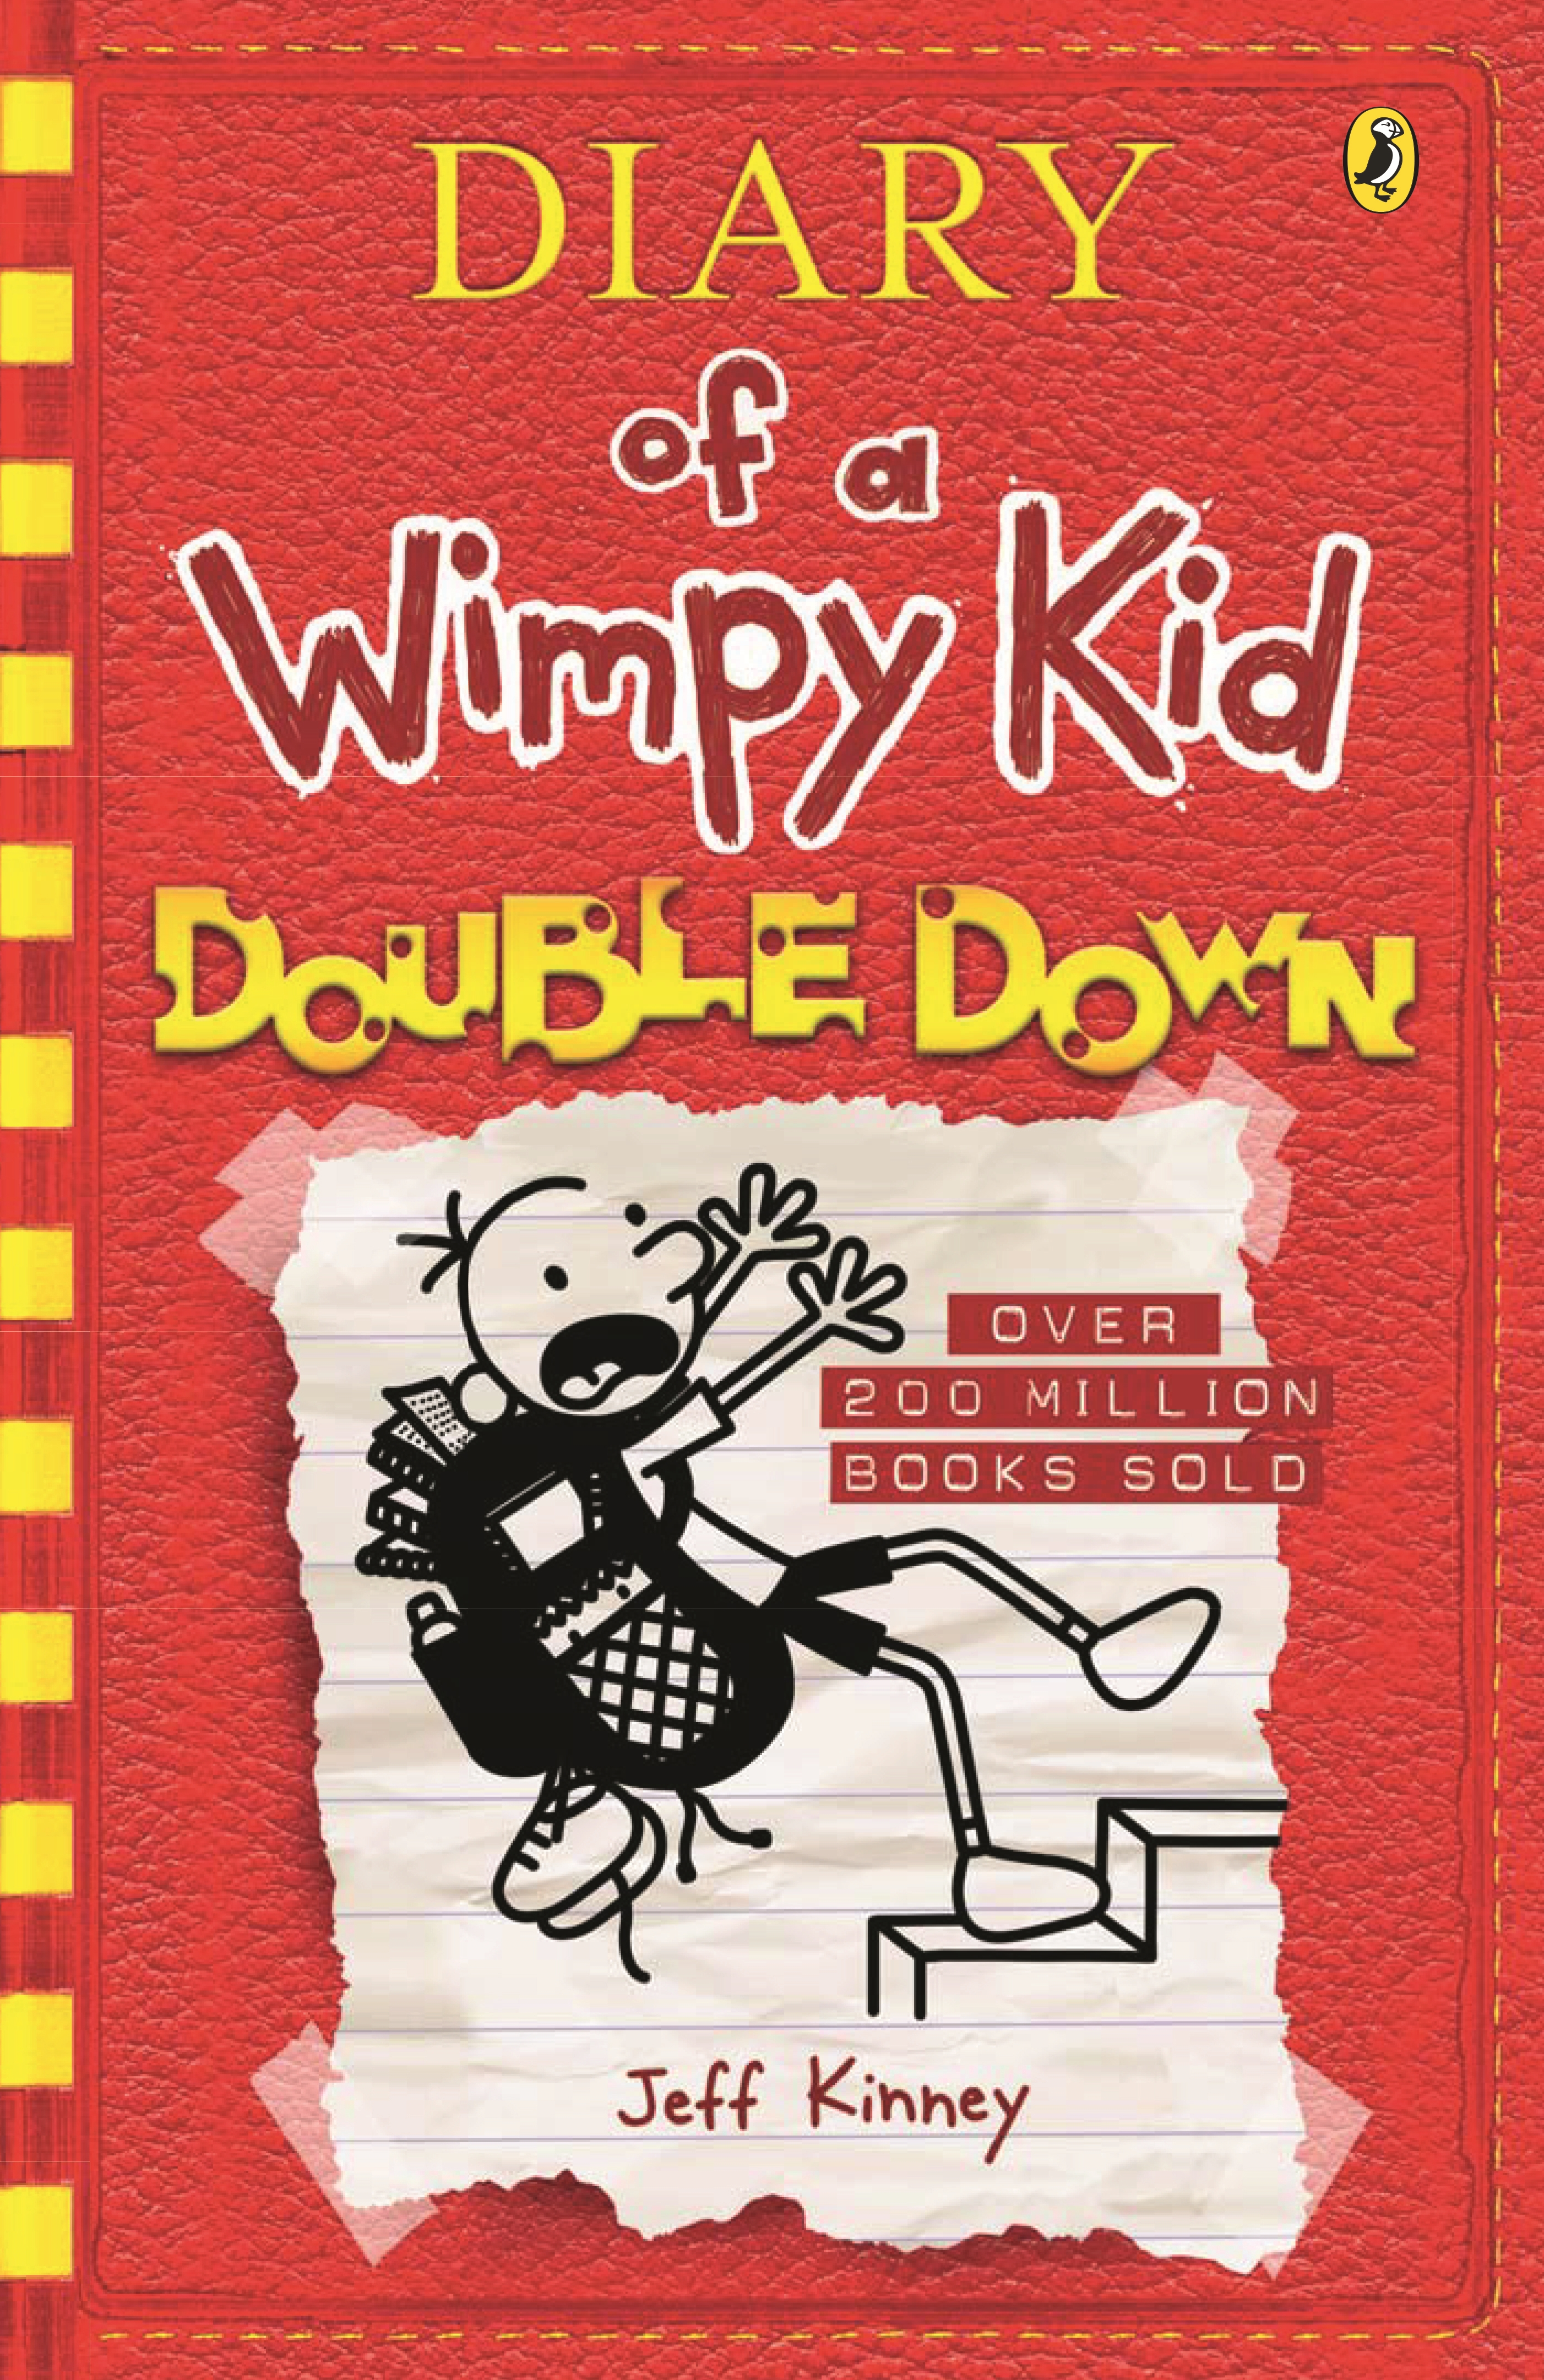 Double down diary of a wimpy kid bk11 by jeff kinney penguin hi res cover double down diary of a wimpy kid solutioingenieria Gallery